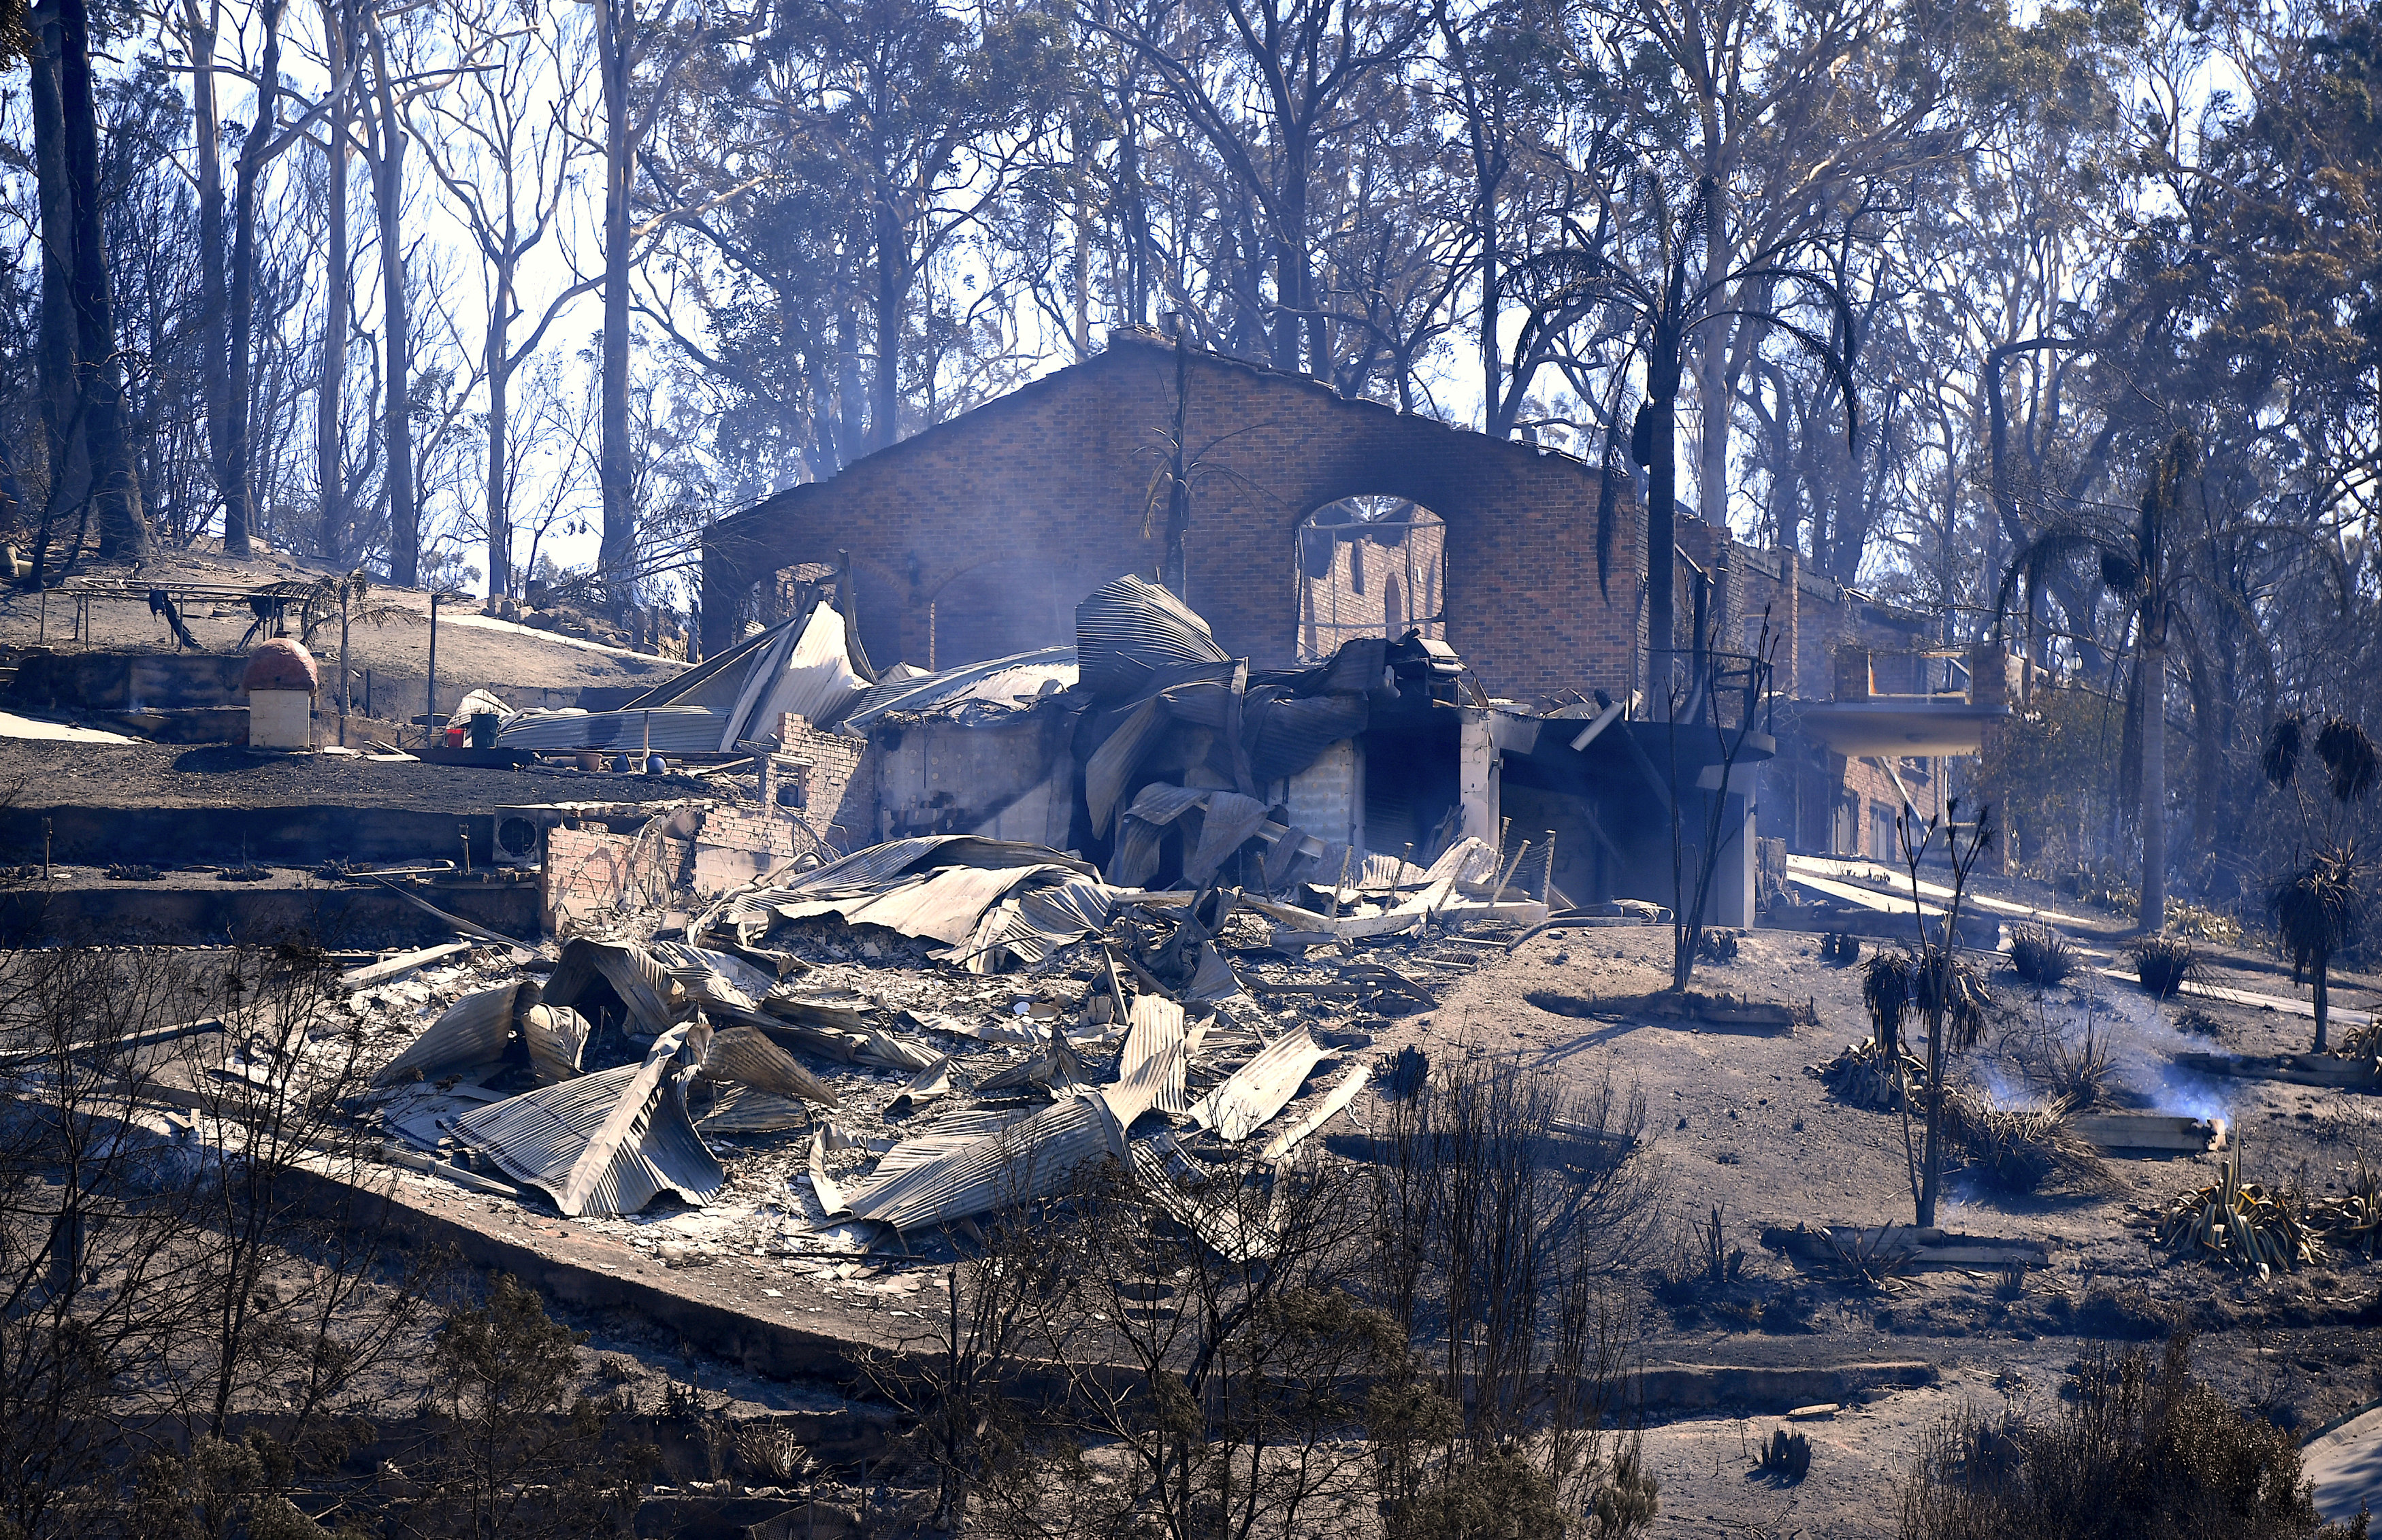 Smoke rises from a destroyed home after a bushfire swept through the town of Tathra, located on the south-east coast of New South Wales in Australia, March 19, 2018. AAP/Dean Lewins/via REUTERS